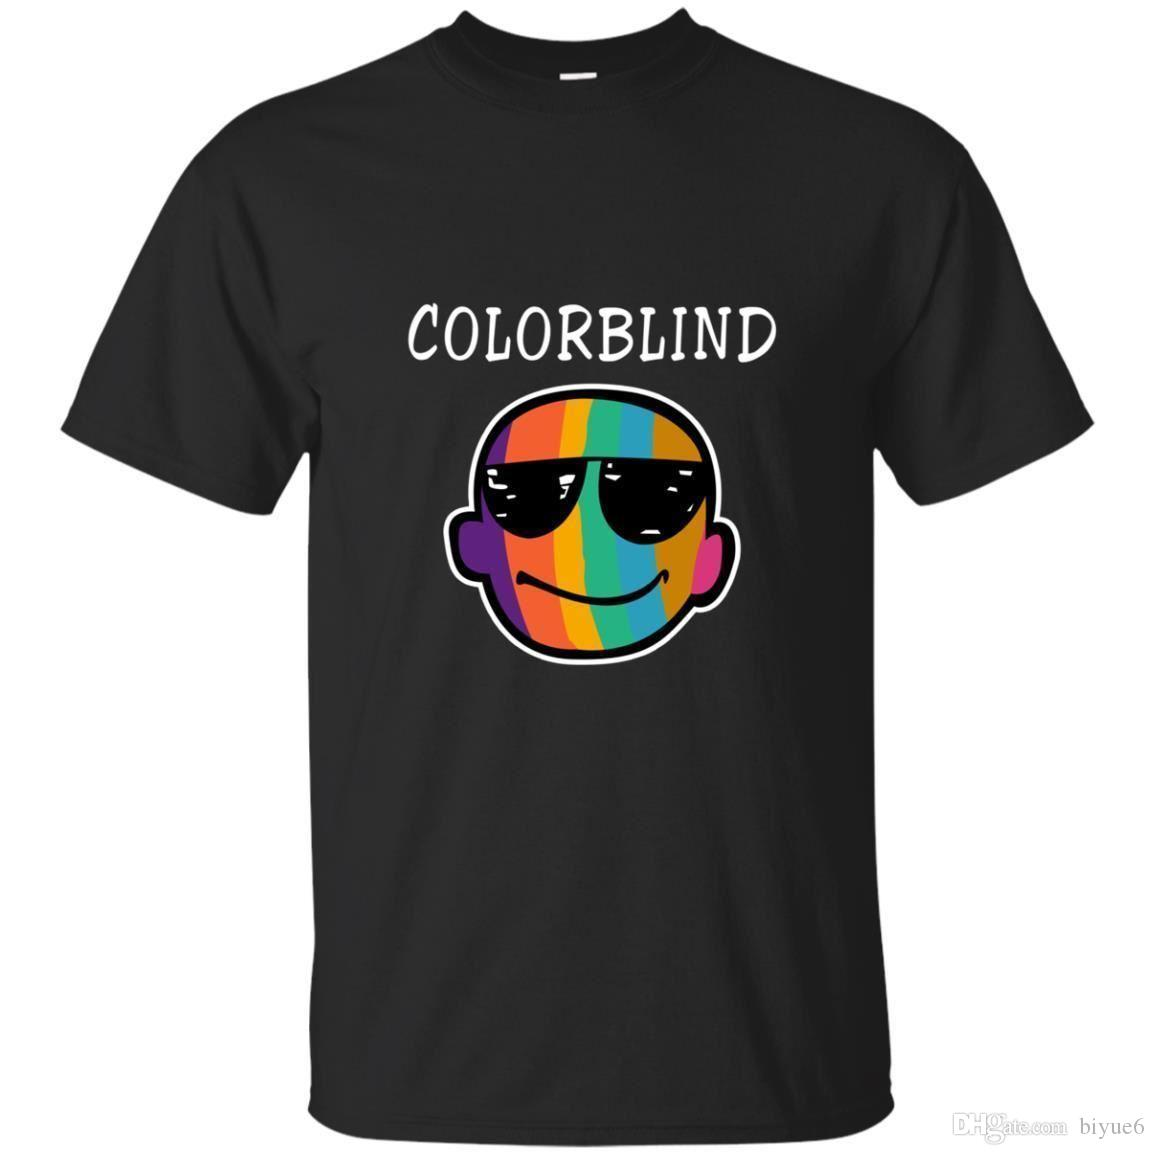 61a86a76 Black, Navy T Shirt For Men Colorblind Graphic Size S 3XL New Fashion Mens  Short Sleeve T Shirt Cotton T Shirts Tshirt Designs T Shirt Design Template  From ...